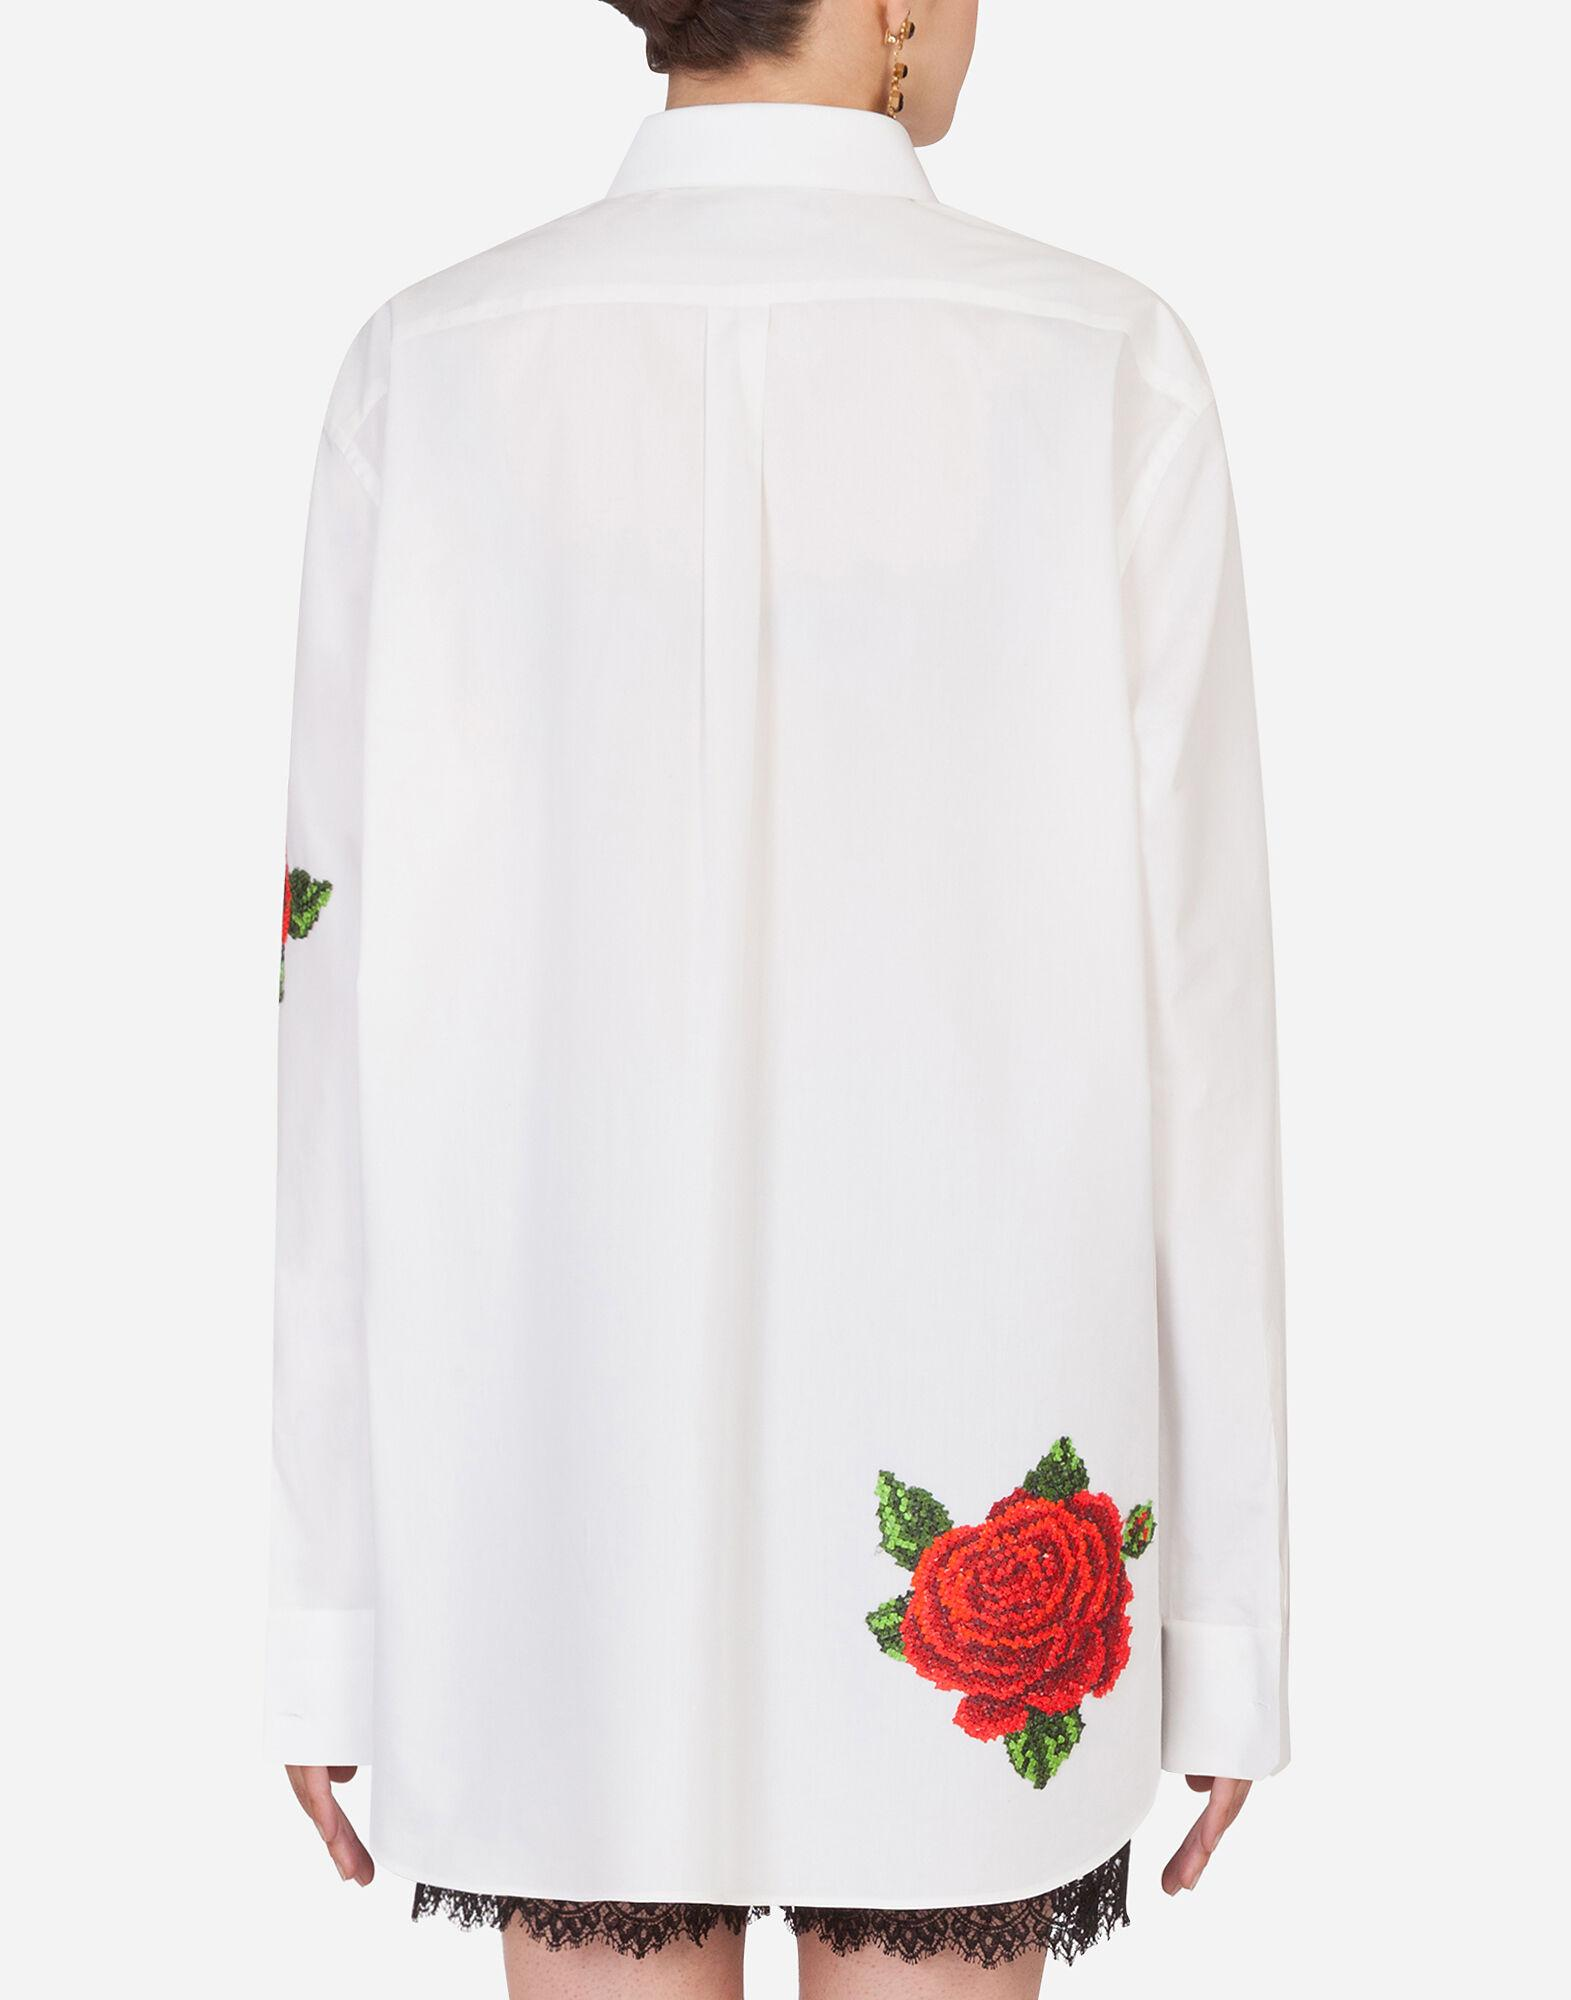 Shirt with hand-embroidered roses 1